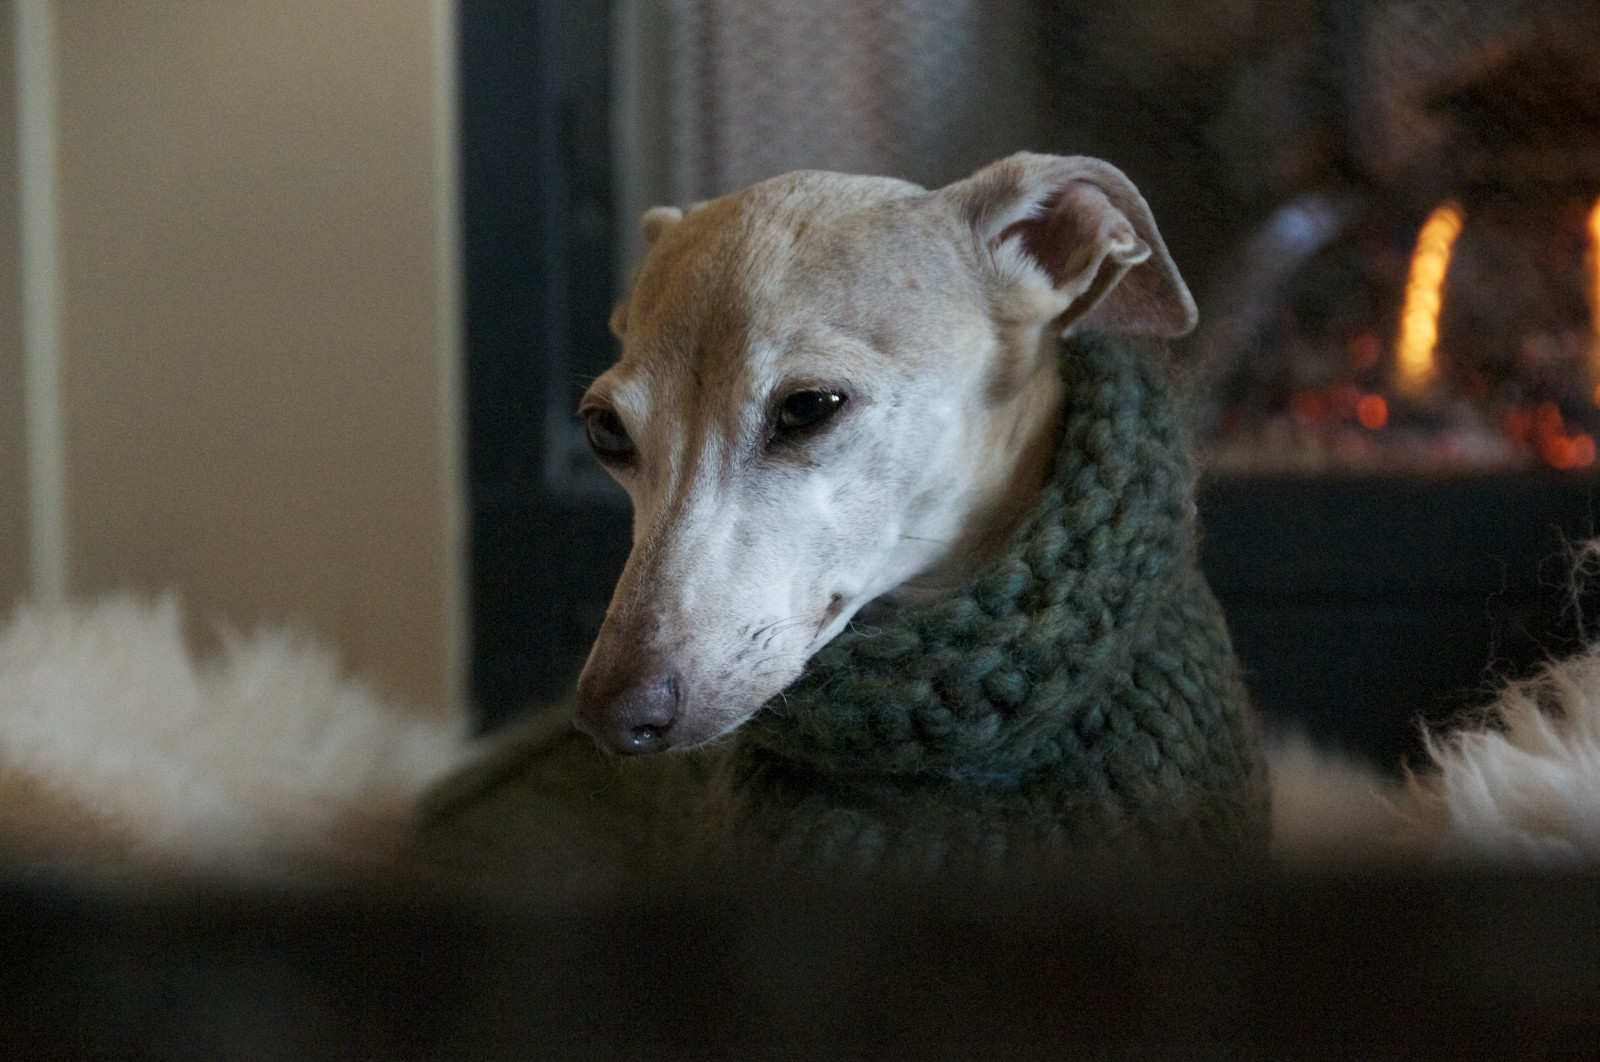 A tan greyhound wearing a green knitted coat by a fire.